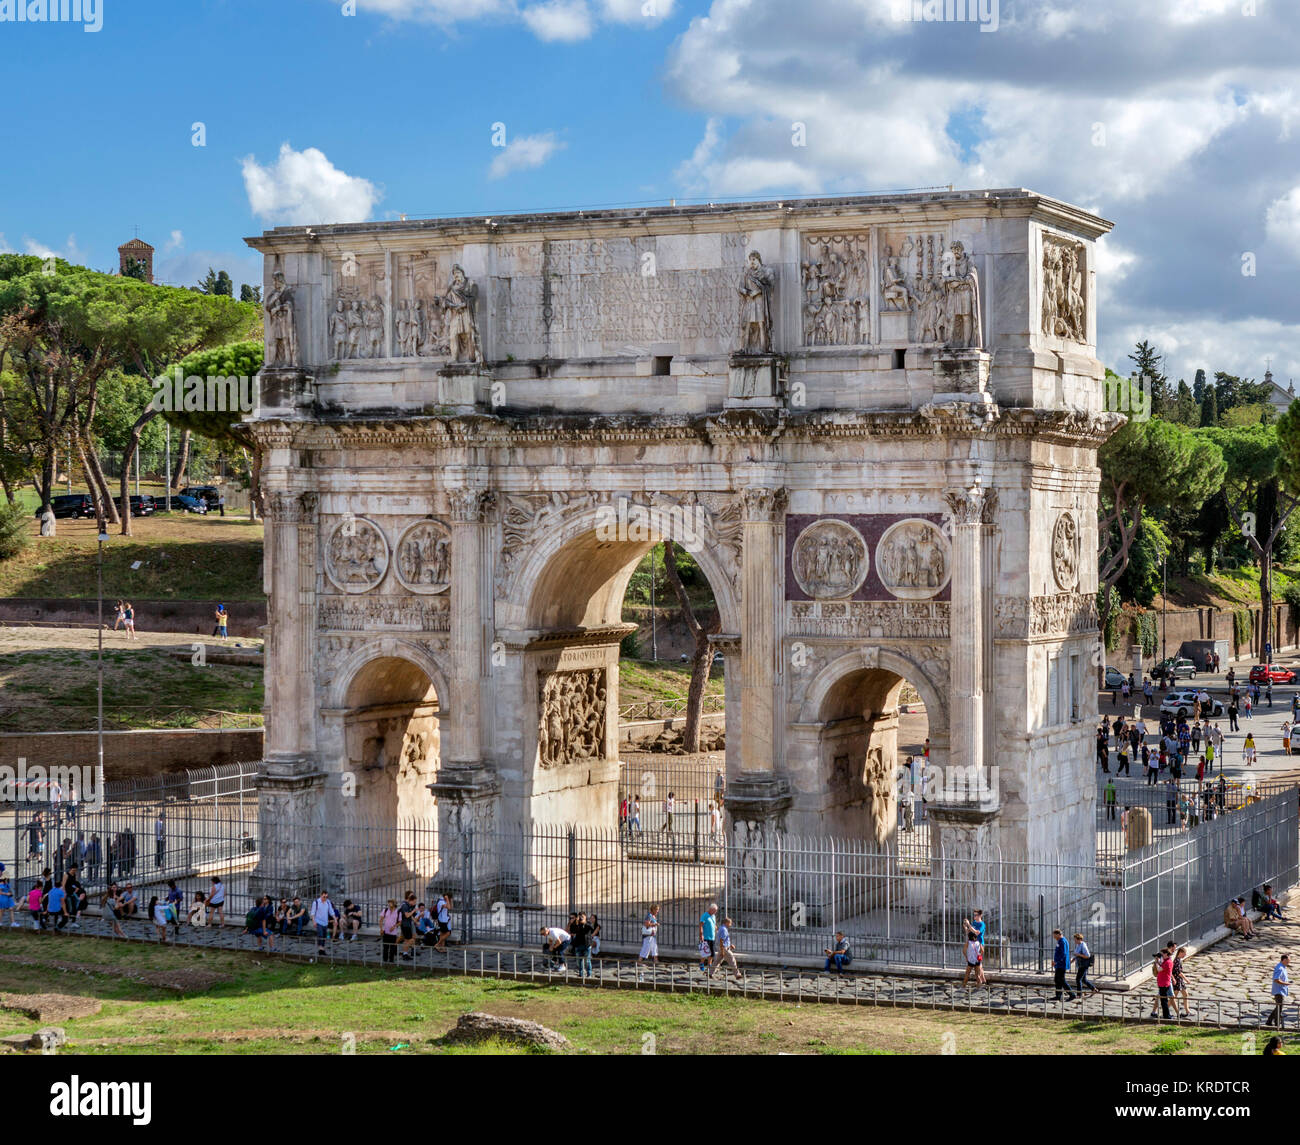 The Arch of Constantine, Rome, Italy - Stock Image